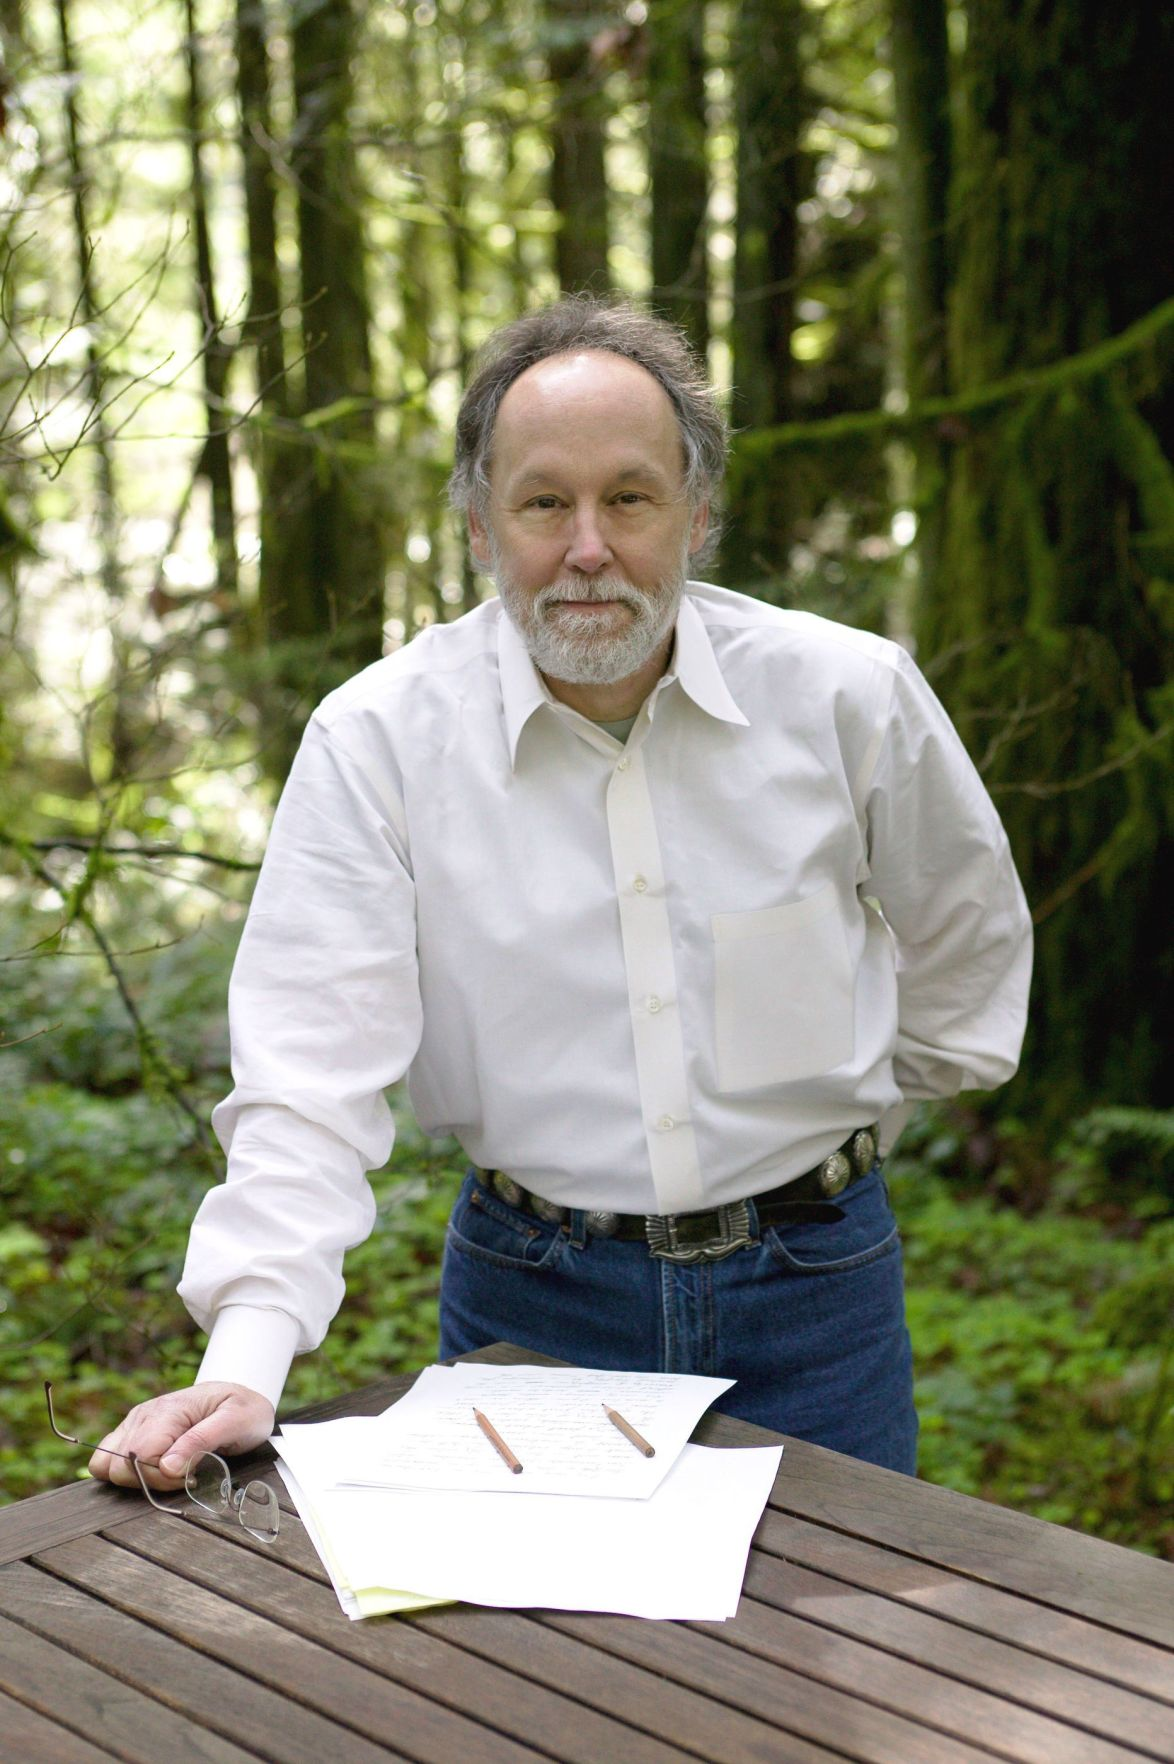 Nature writer to speak in Charleston Award-winning author Barry Lopez to talk about conservation for Birds of Prey event